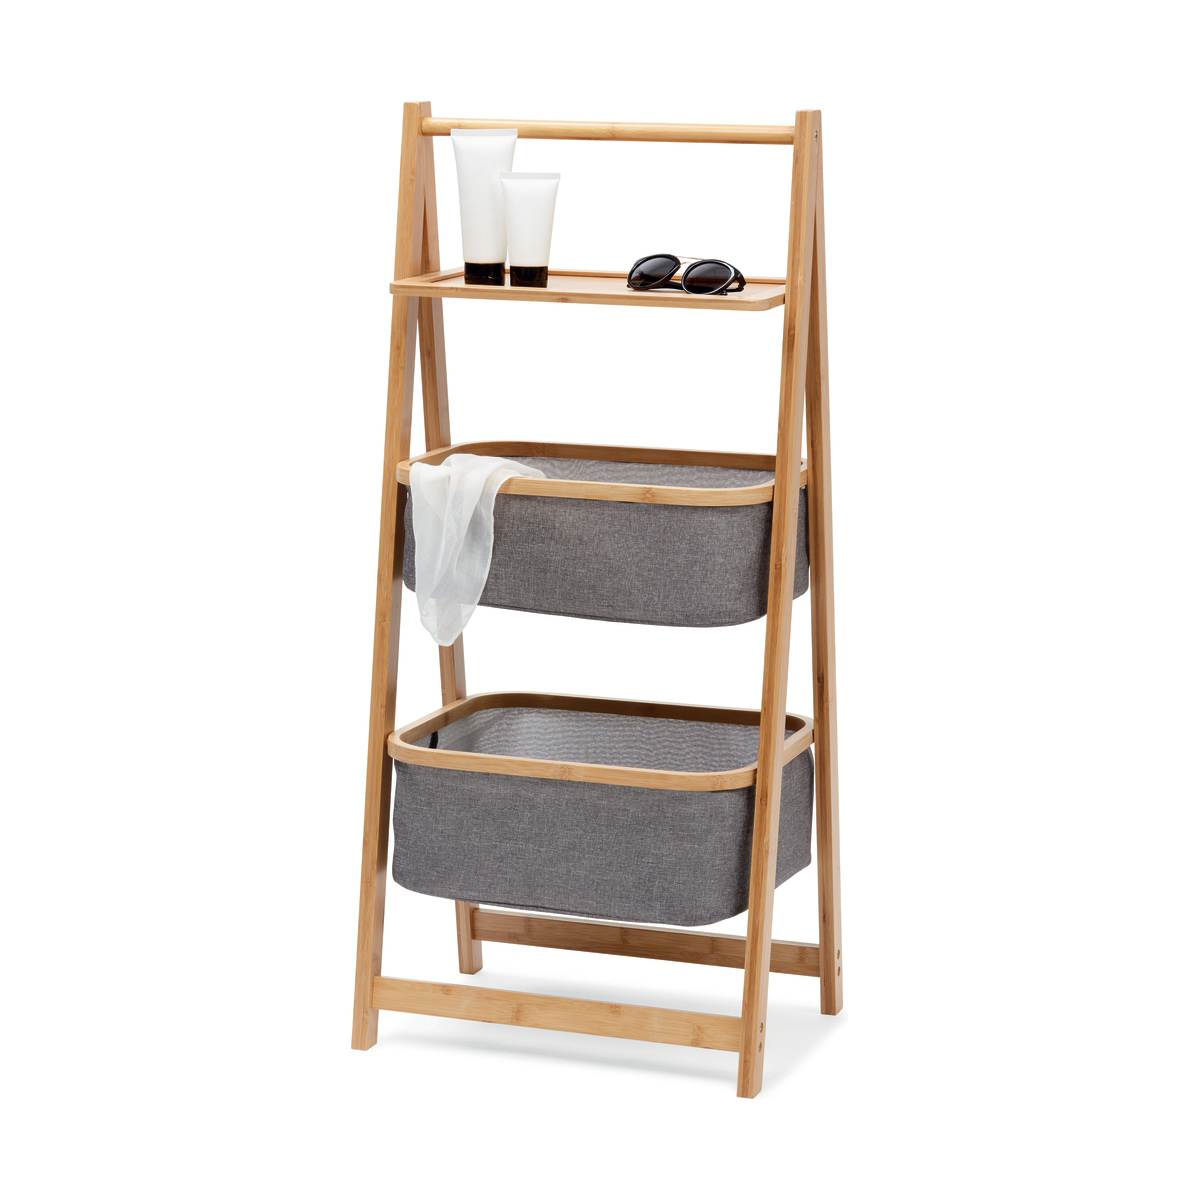 3 Tier Storage Caddy With Bamboo Frame Kmart Bamboo Frame